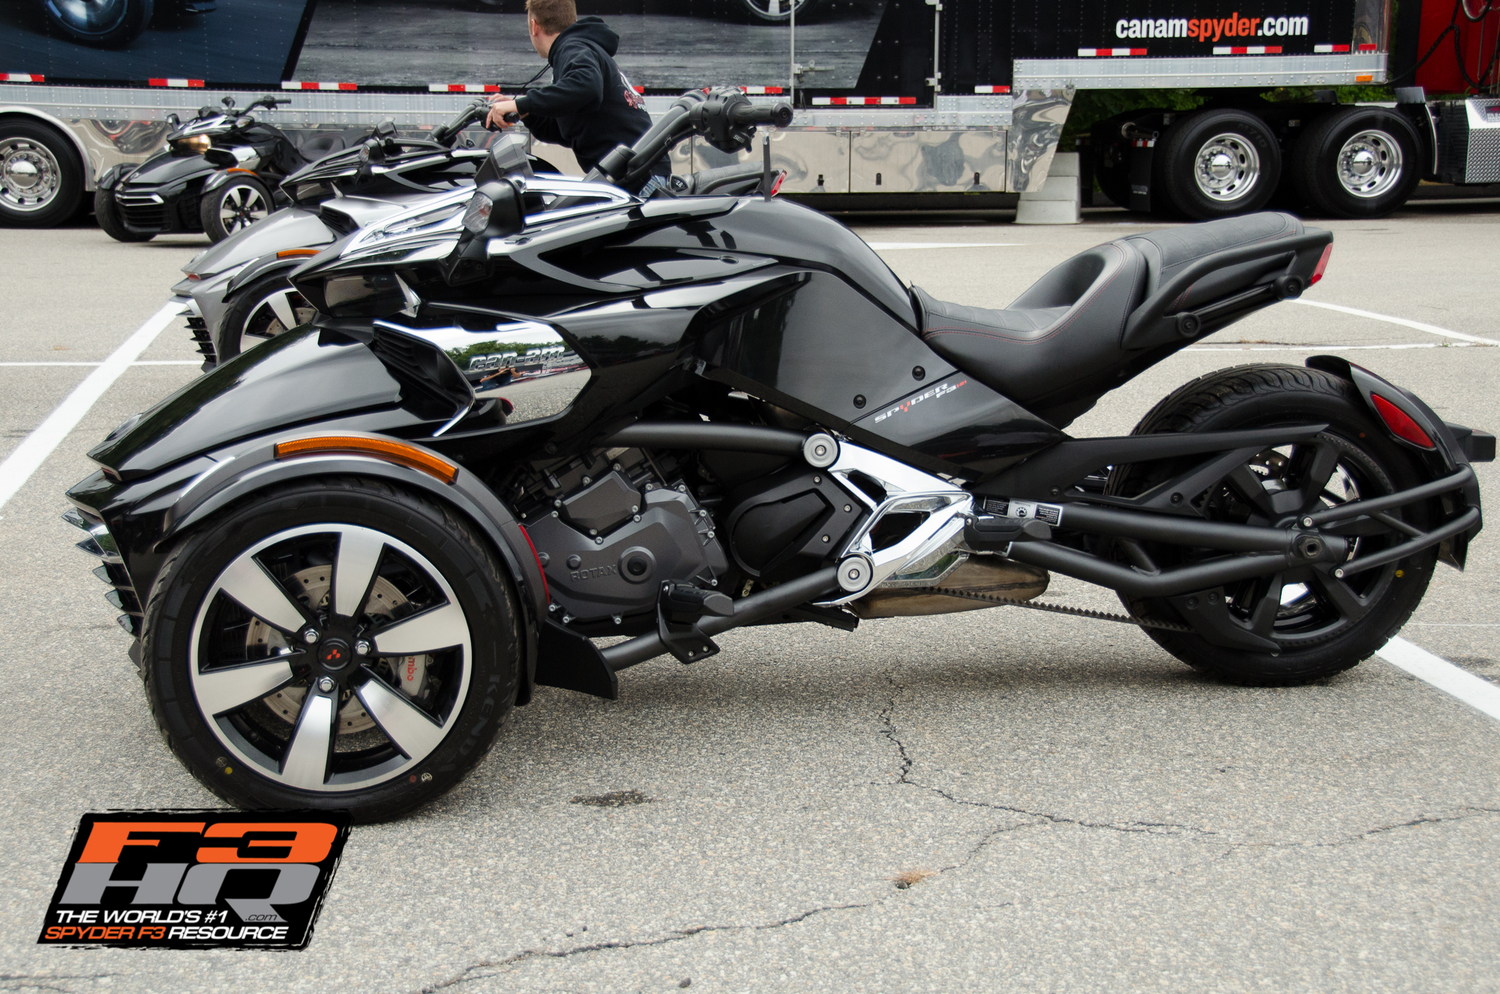 2014 Can-Am Spyder F3 - Product Launch and Ryde-35-25.jpg